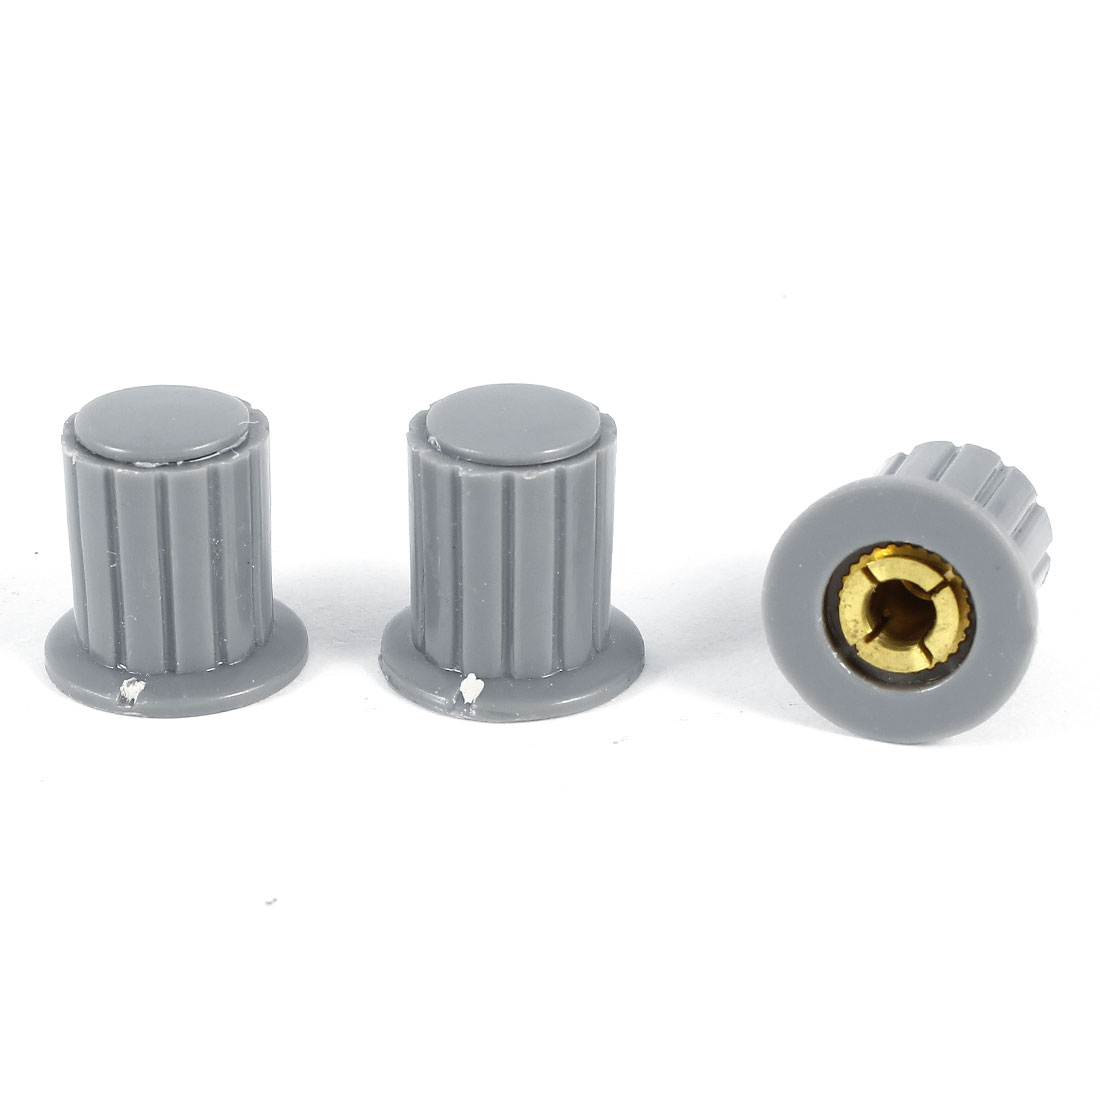 3 Pcs 4mm Hole Diameter Potentiometer Knob Cover Cap 16mmx16mm Gray KYP16-16-4J